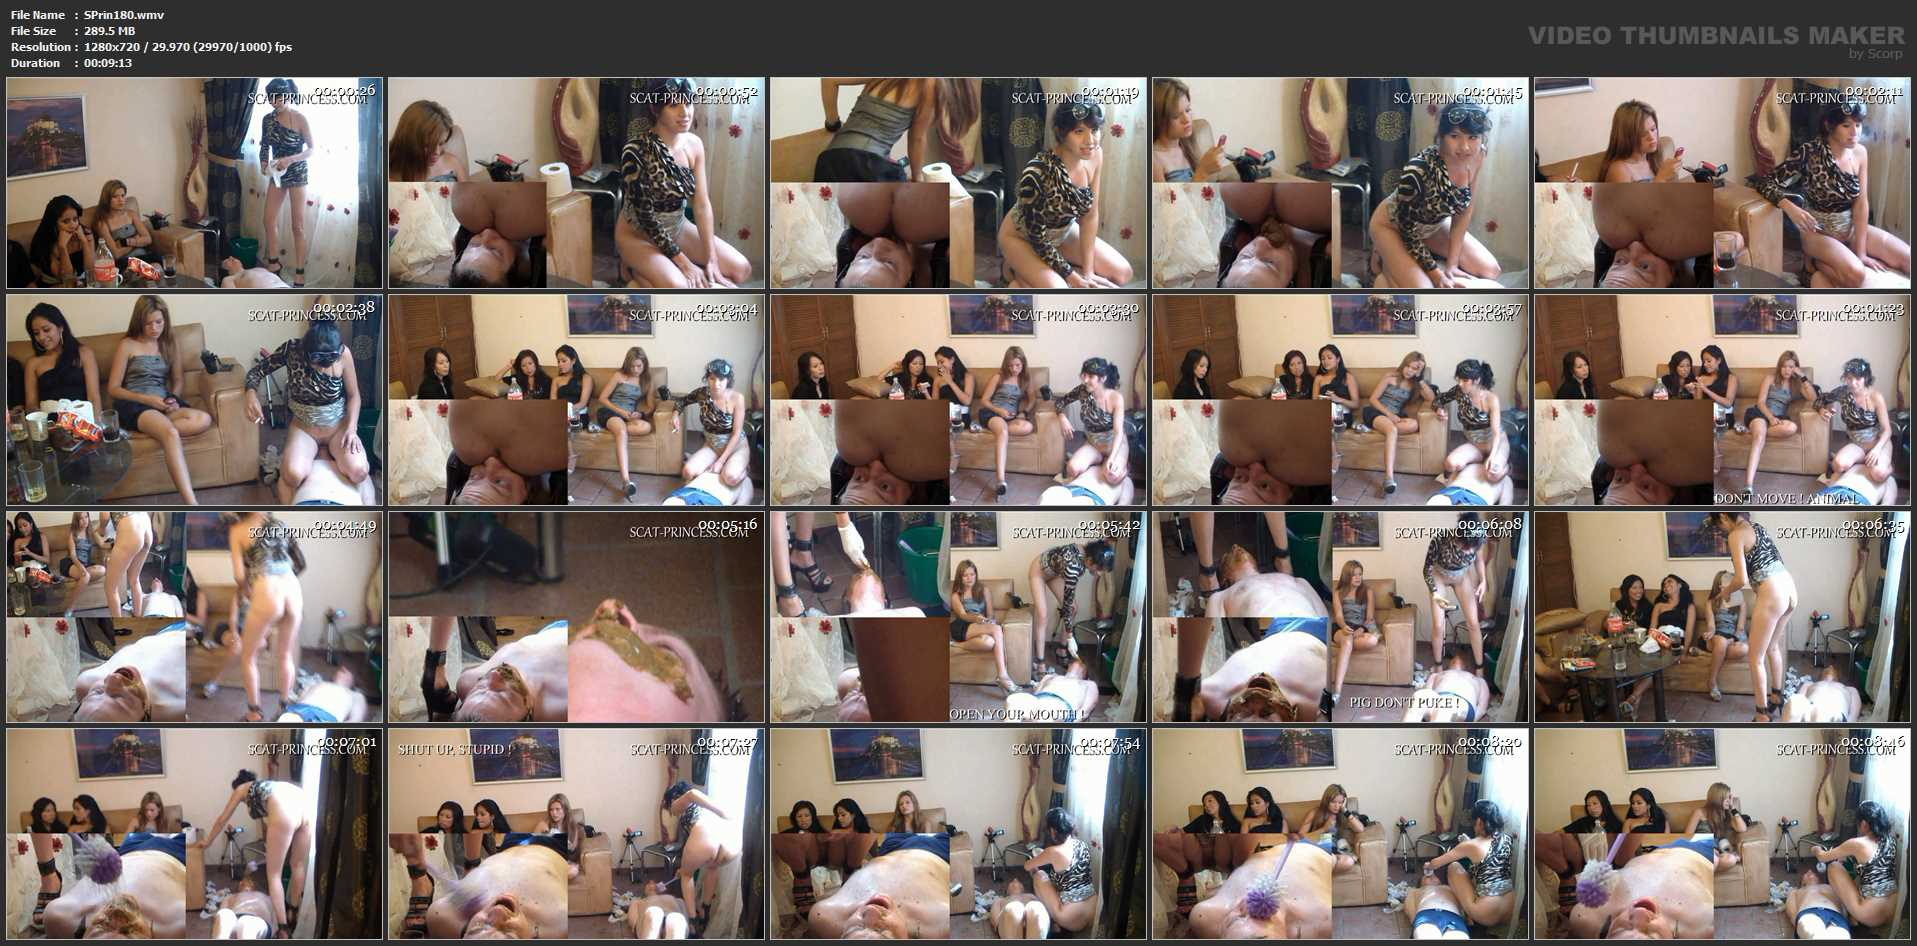 [SCAT-PRINCESS] Dramatic Turn during filming, please let me go Part 3 Tifany [HD][720p][WMV]